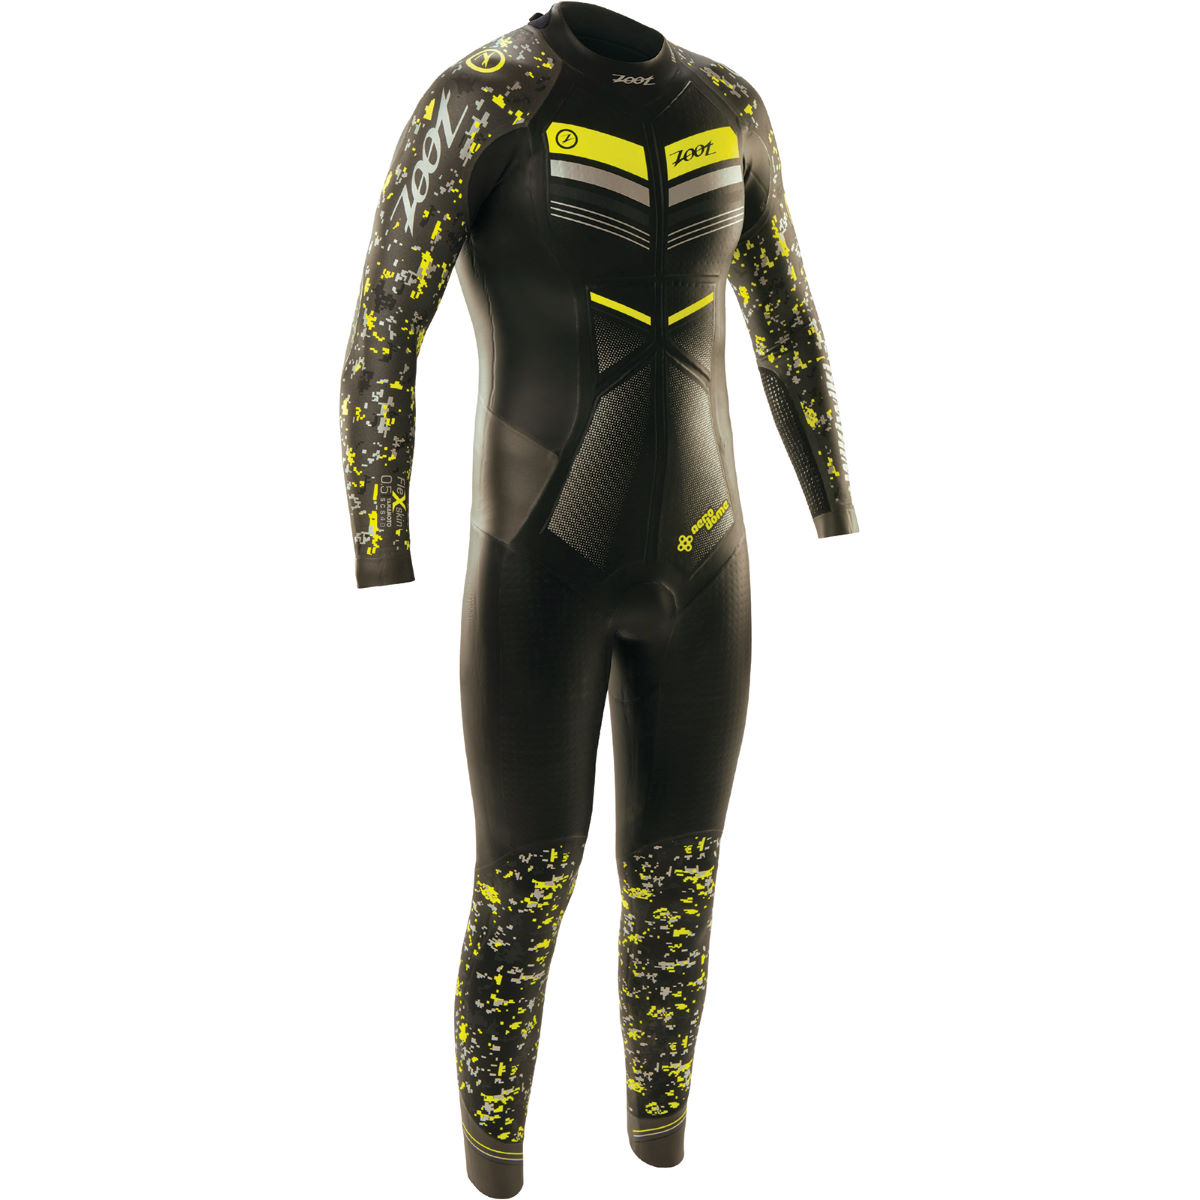 Zoot Wikiwiki Wetsuit Wetsuits Review